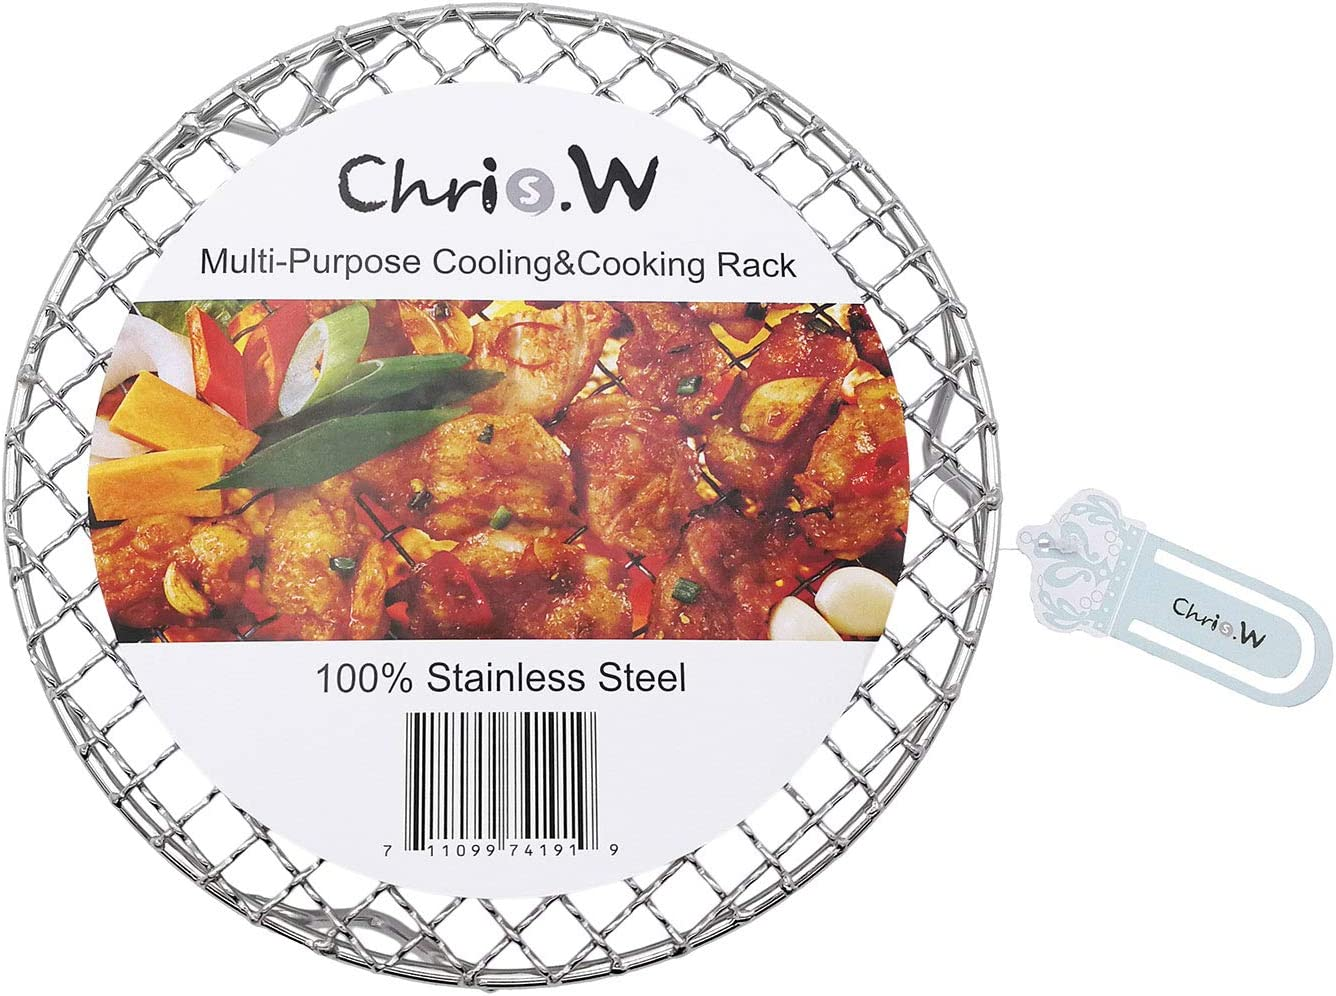 Chris.W Multi-Purpose Round Cooling and Baking Rack, 3 Legs Design for Cooking, Roasting, Drying, Grilling, 100 Stainless Steel(7.5 Inch Dia)